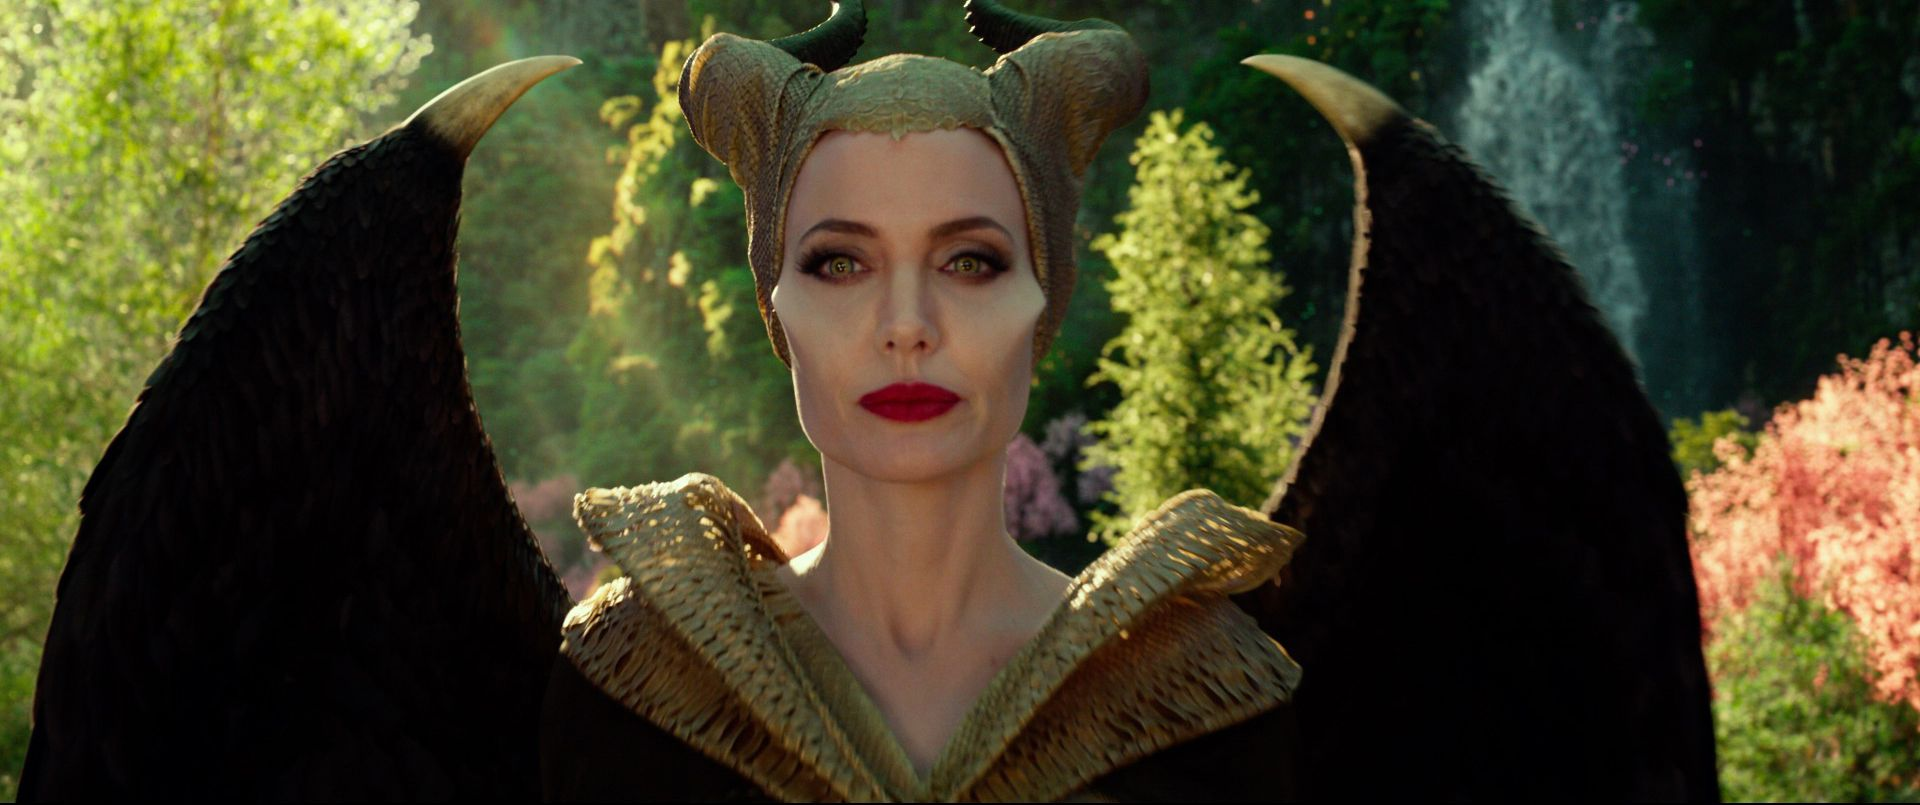 Watch The New Maleficent Mistress Of Evil Official Trailer